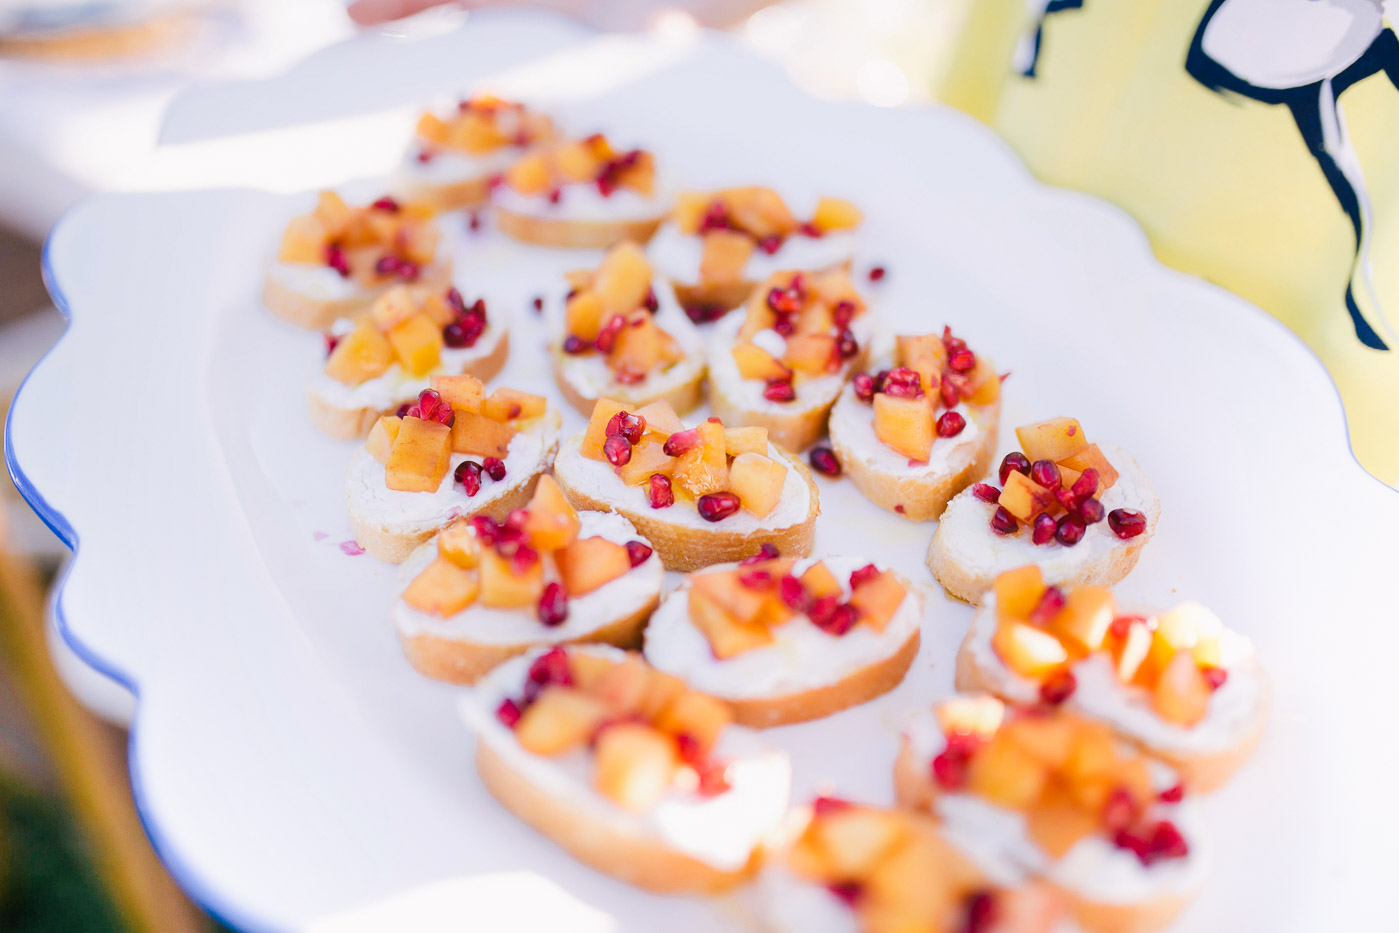 A recipe for Peach Crostinis topped With Honey Whipped Goat Cheese from Lauren Cermak of the Southern Lifestyle Blog, Going For Grace.